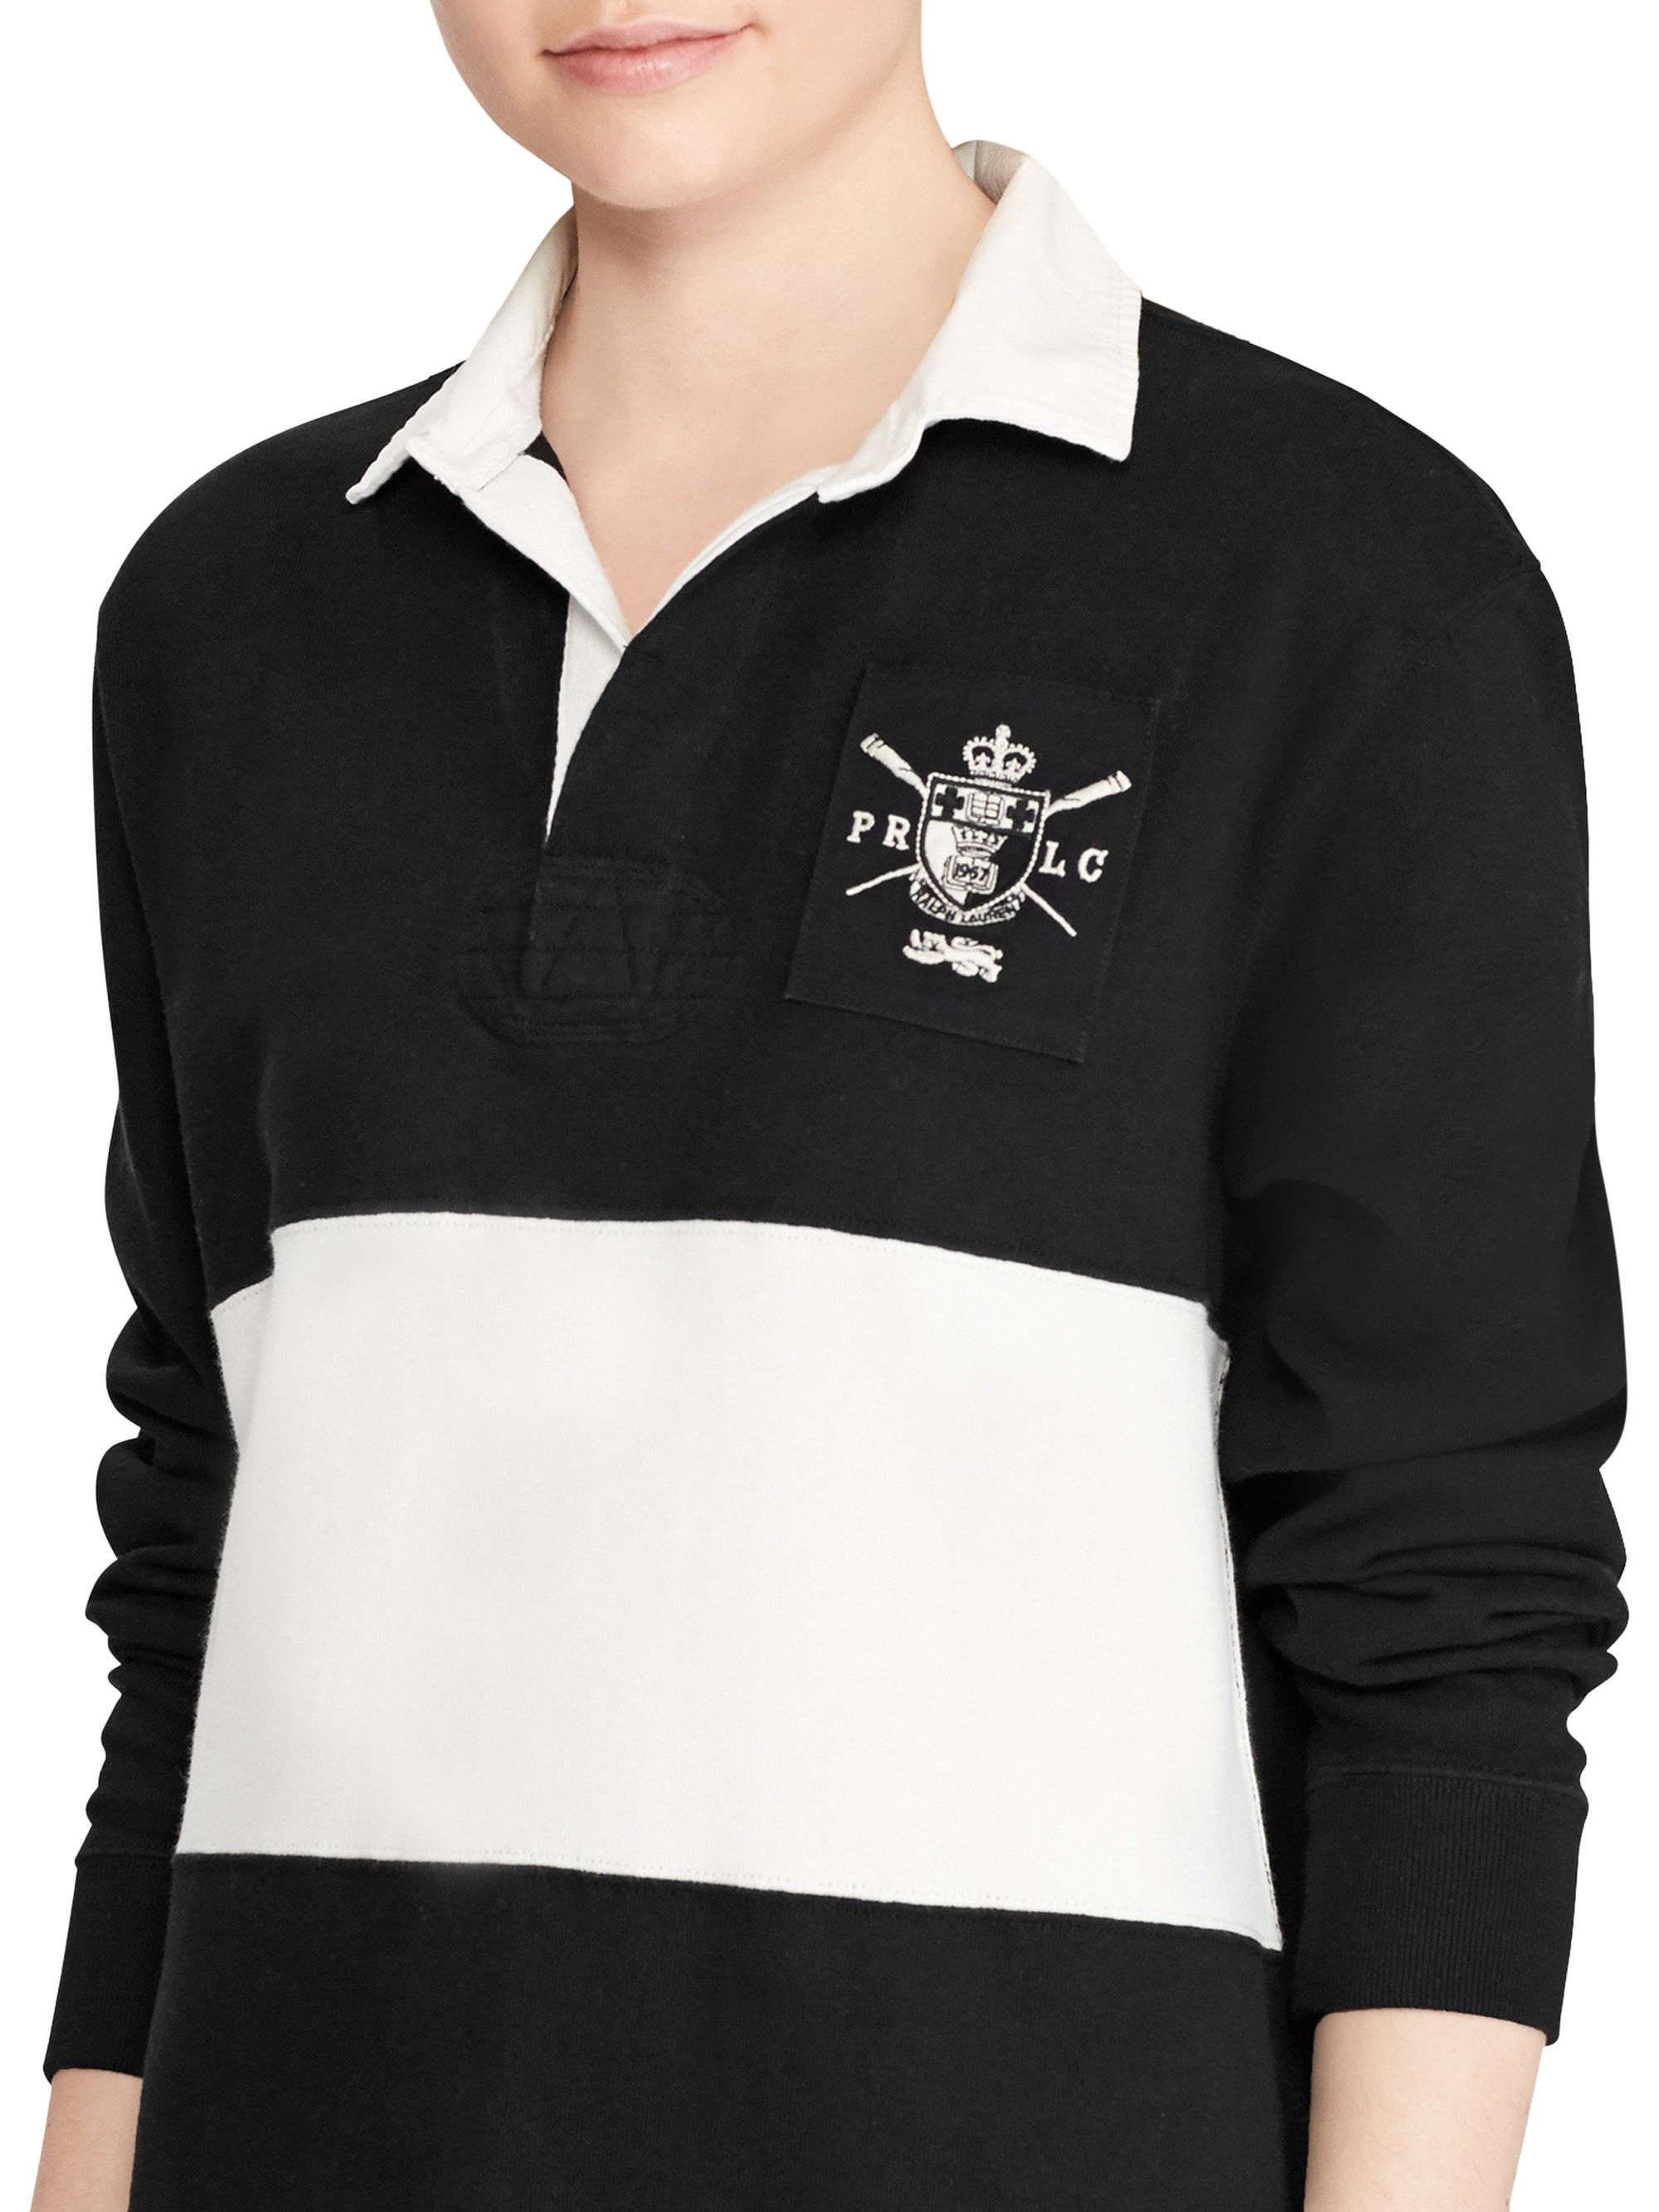 Ralph lauren embroidered rugby shirt dress black medium products